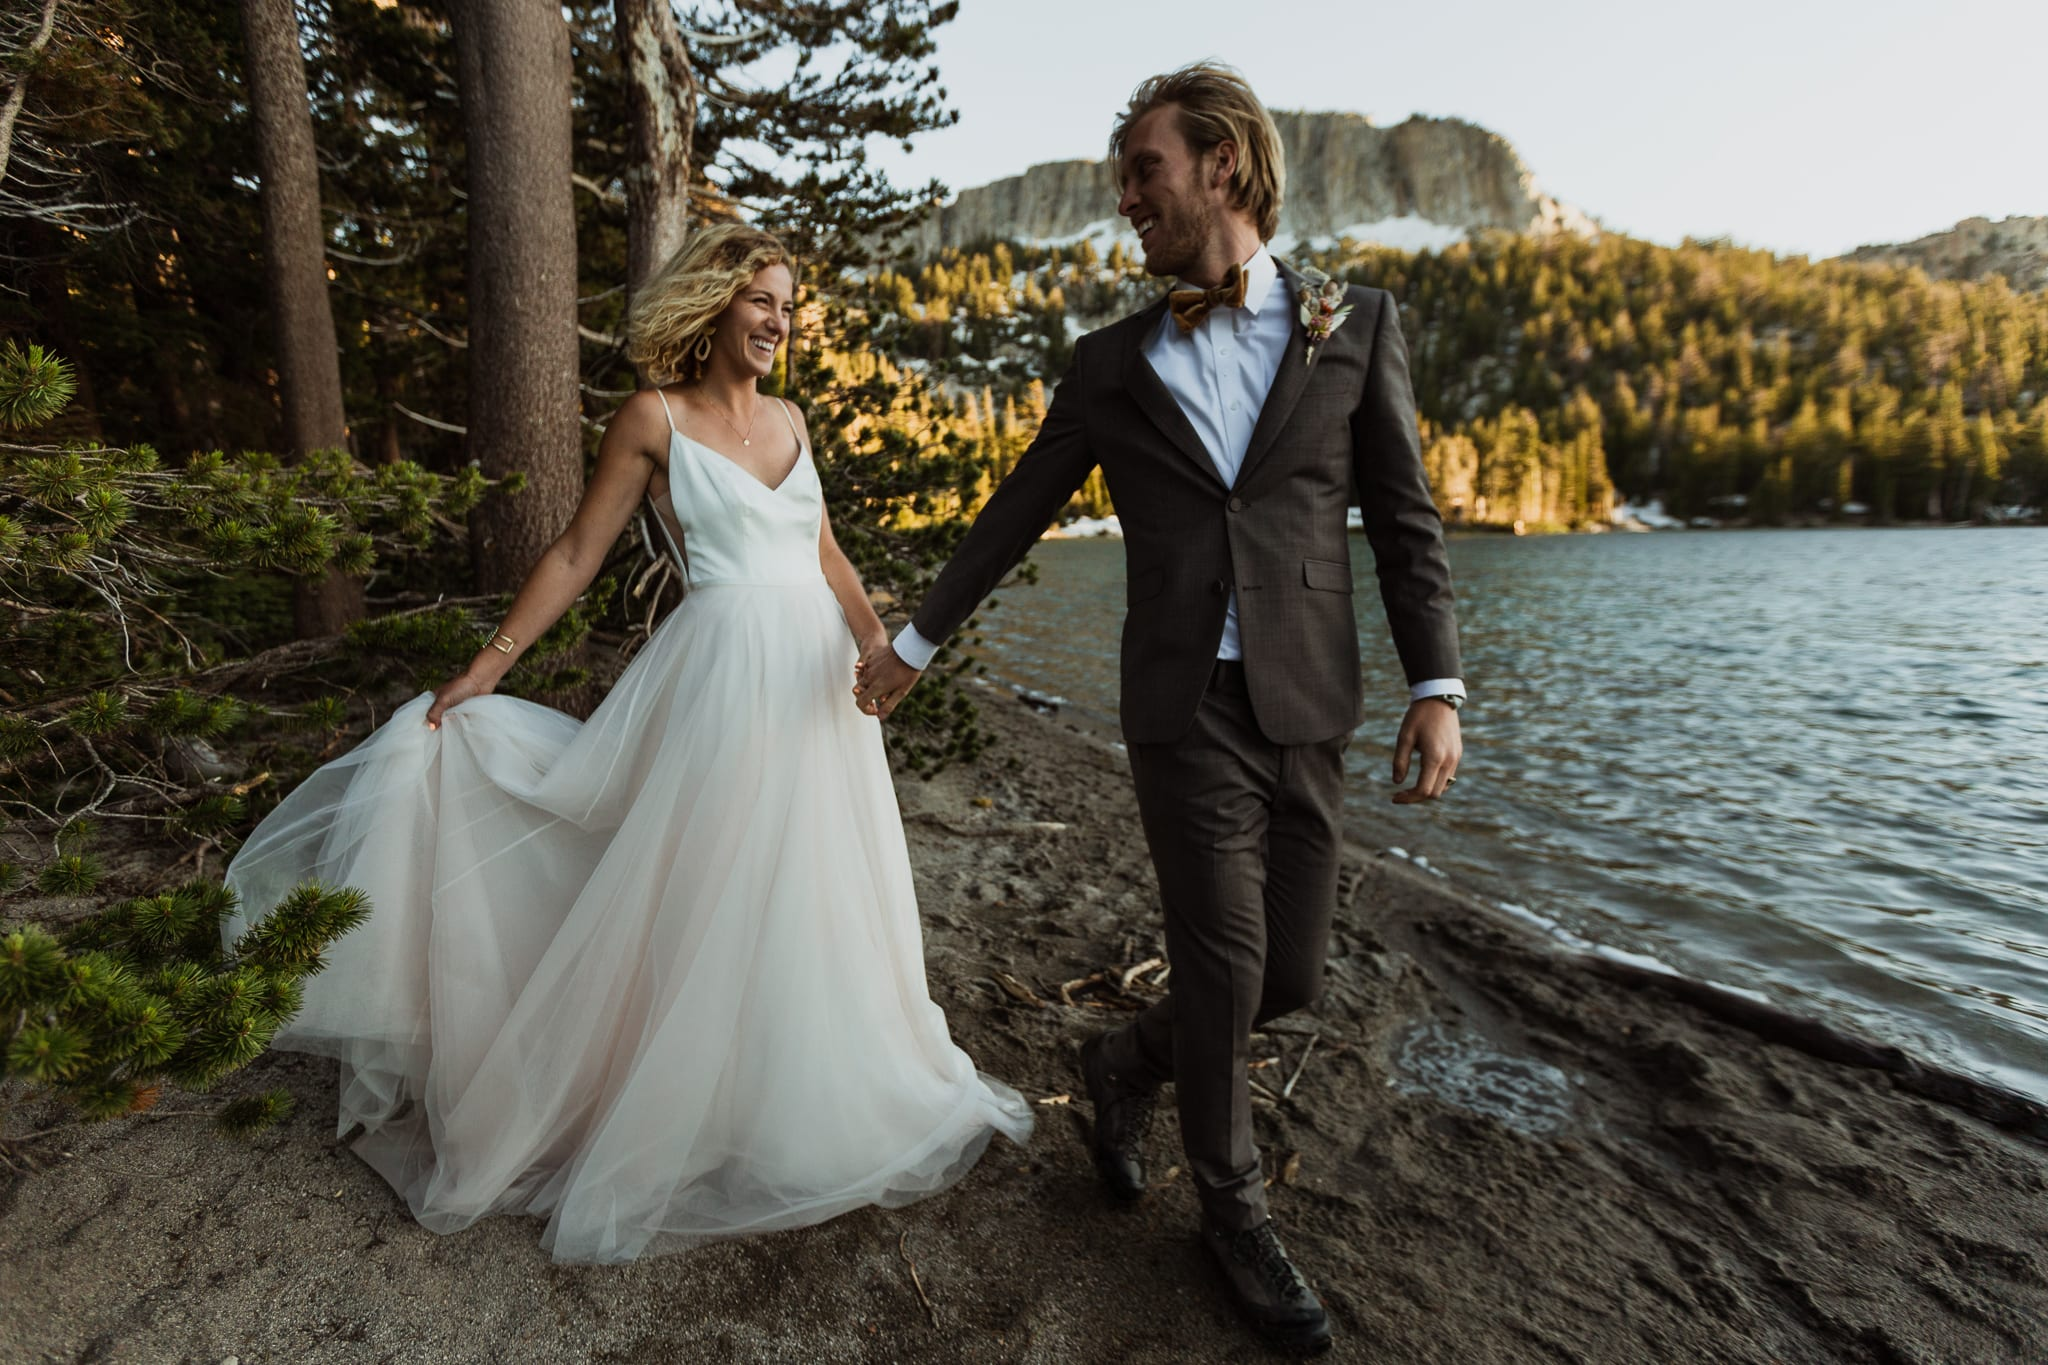 Tyler leads Haylee on their adventure wedding day near the water of McLeod Lake.